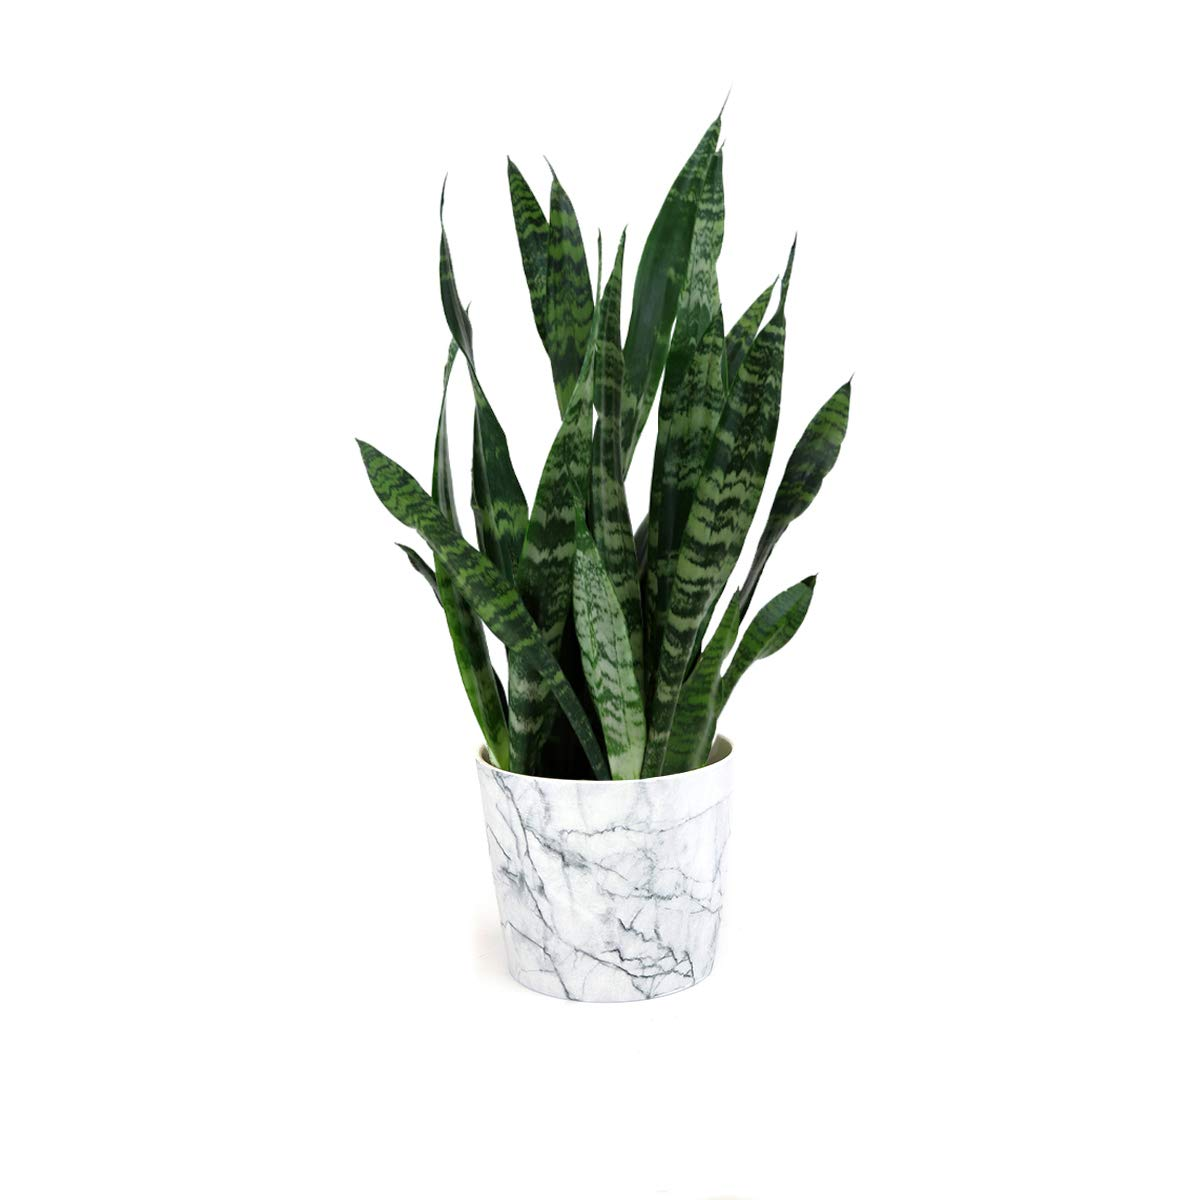 Burpee Black Coral Snake Plant with with 6'' Decorative Waterproof Ceramic Pot   Indirect Low - Light, Live Easy Care House